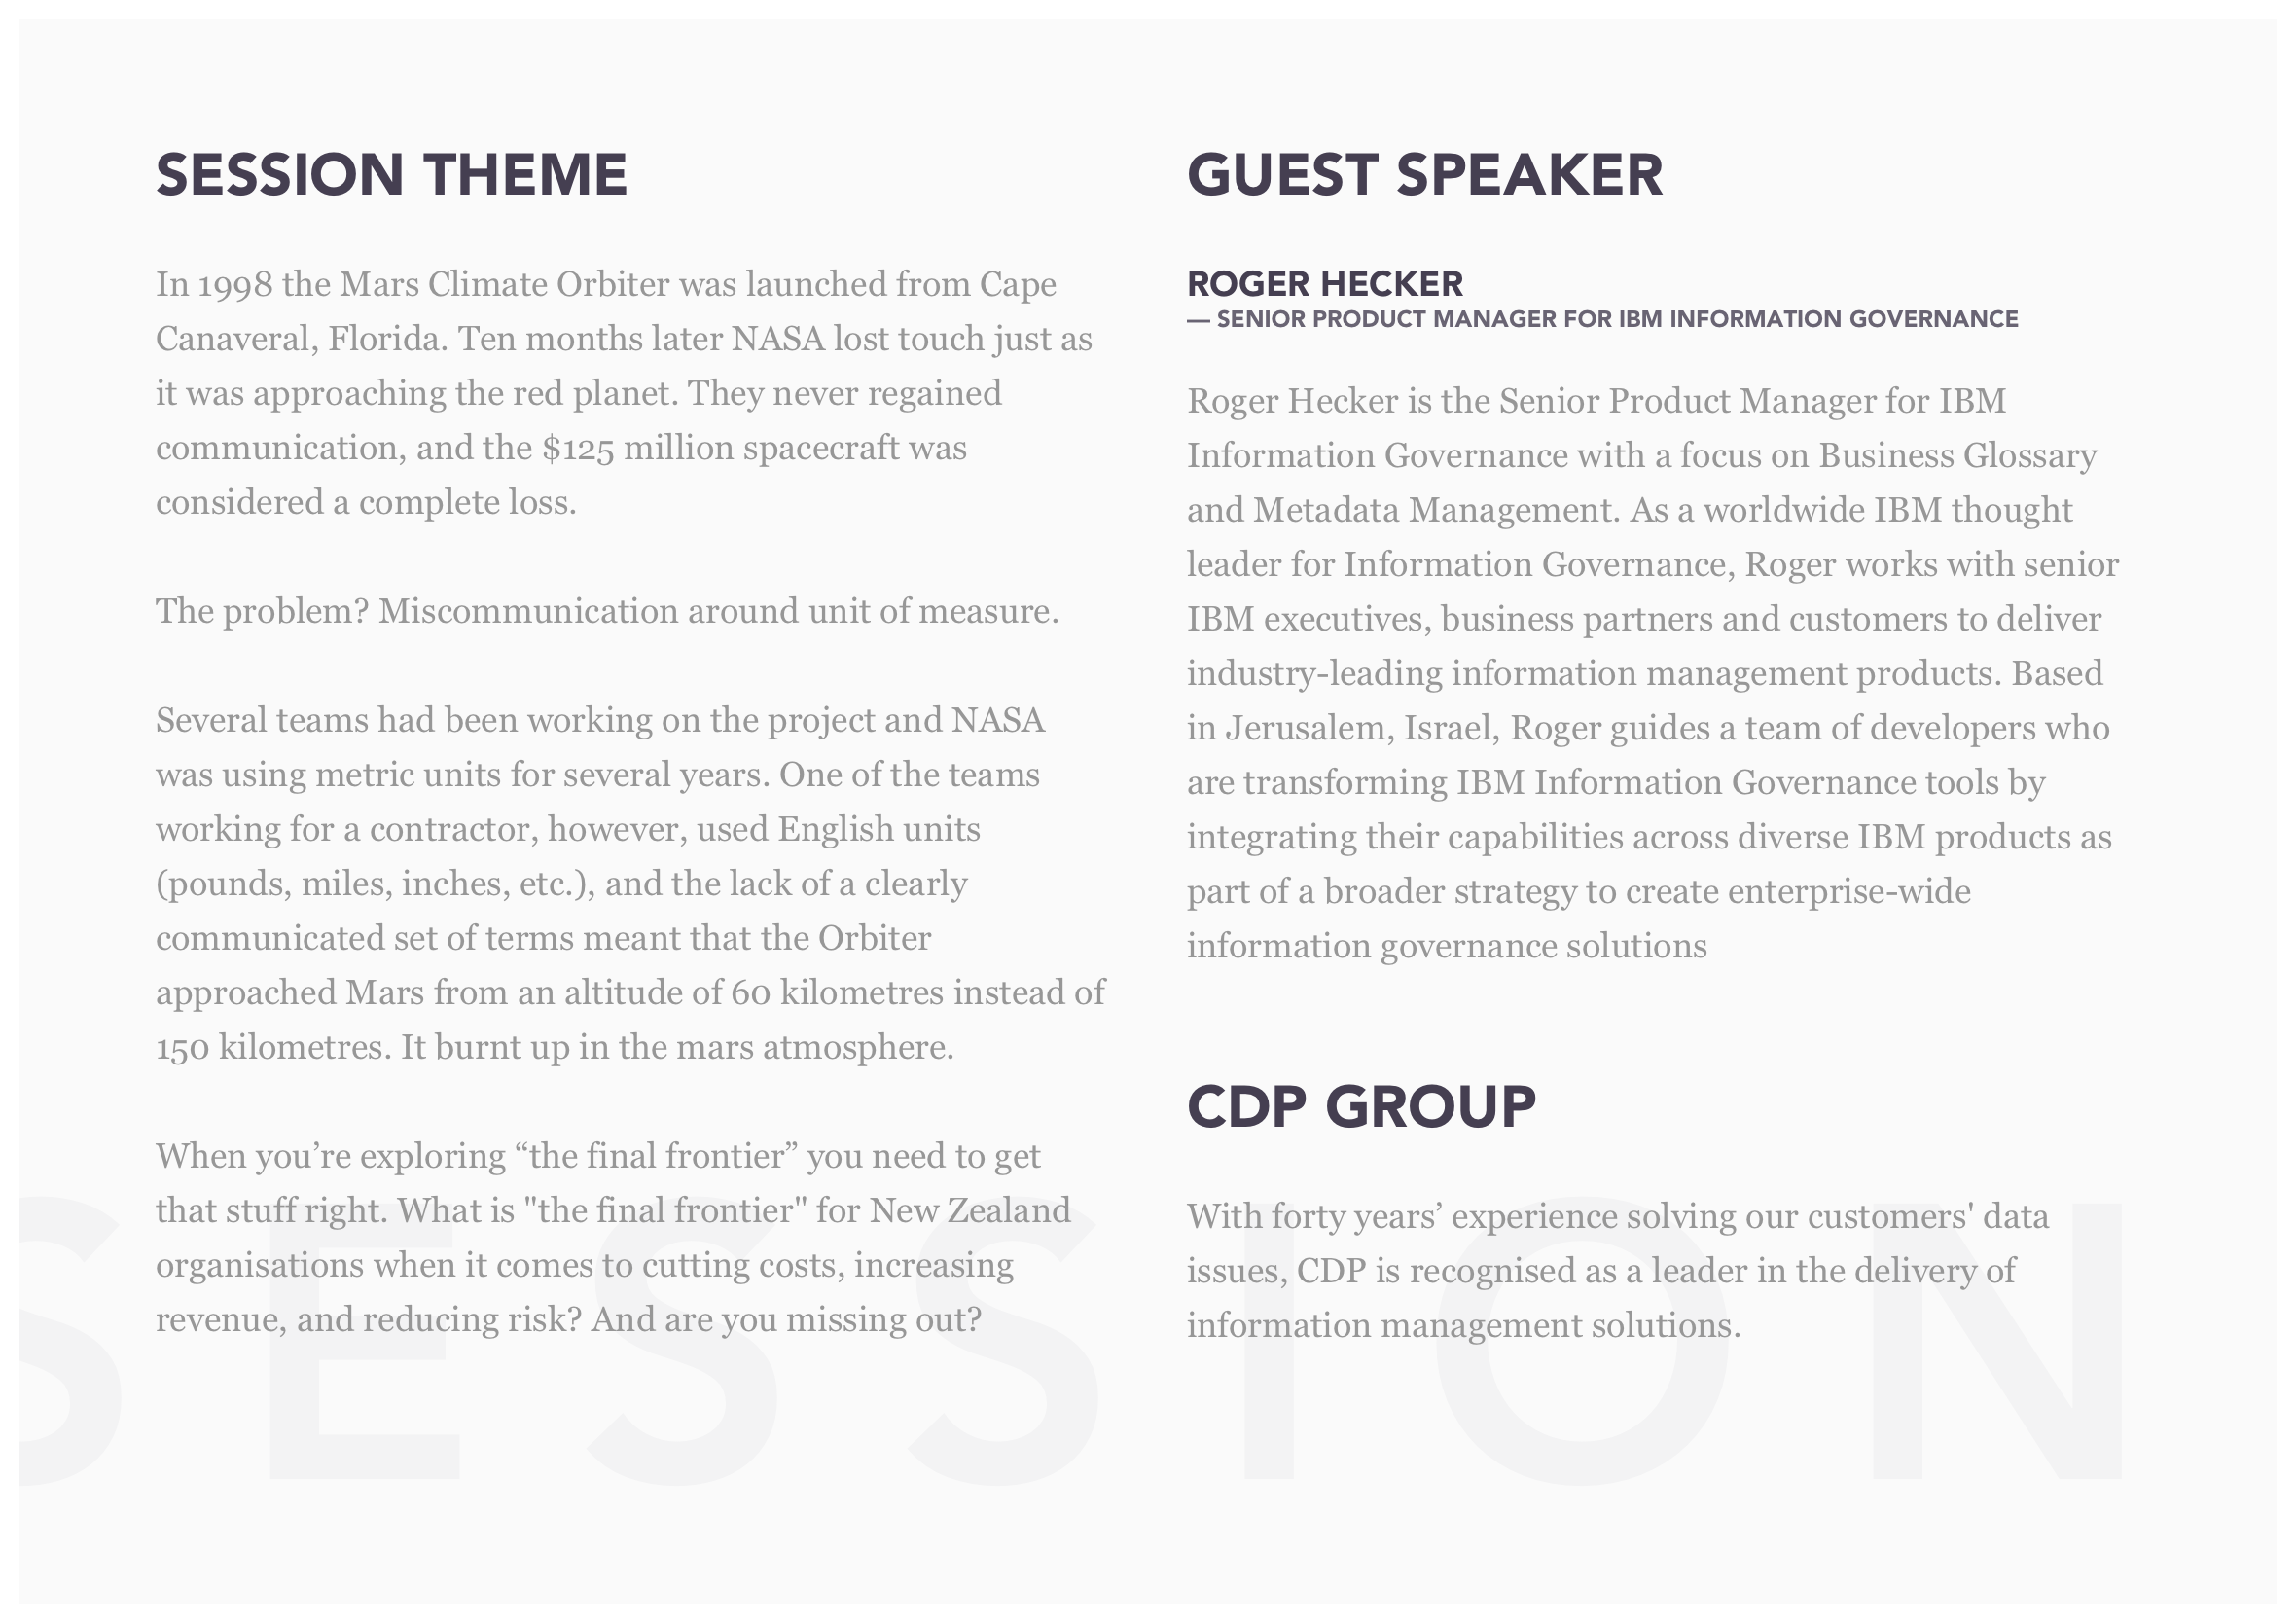 introducing a guest speaker template - cdp executive lunch invitation v2 user experience